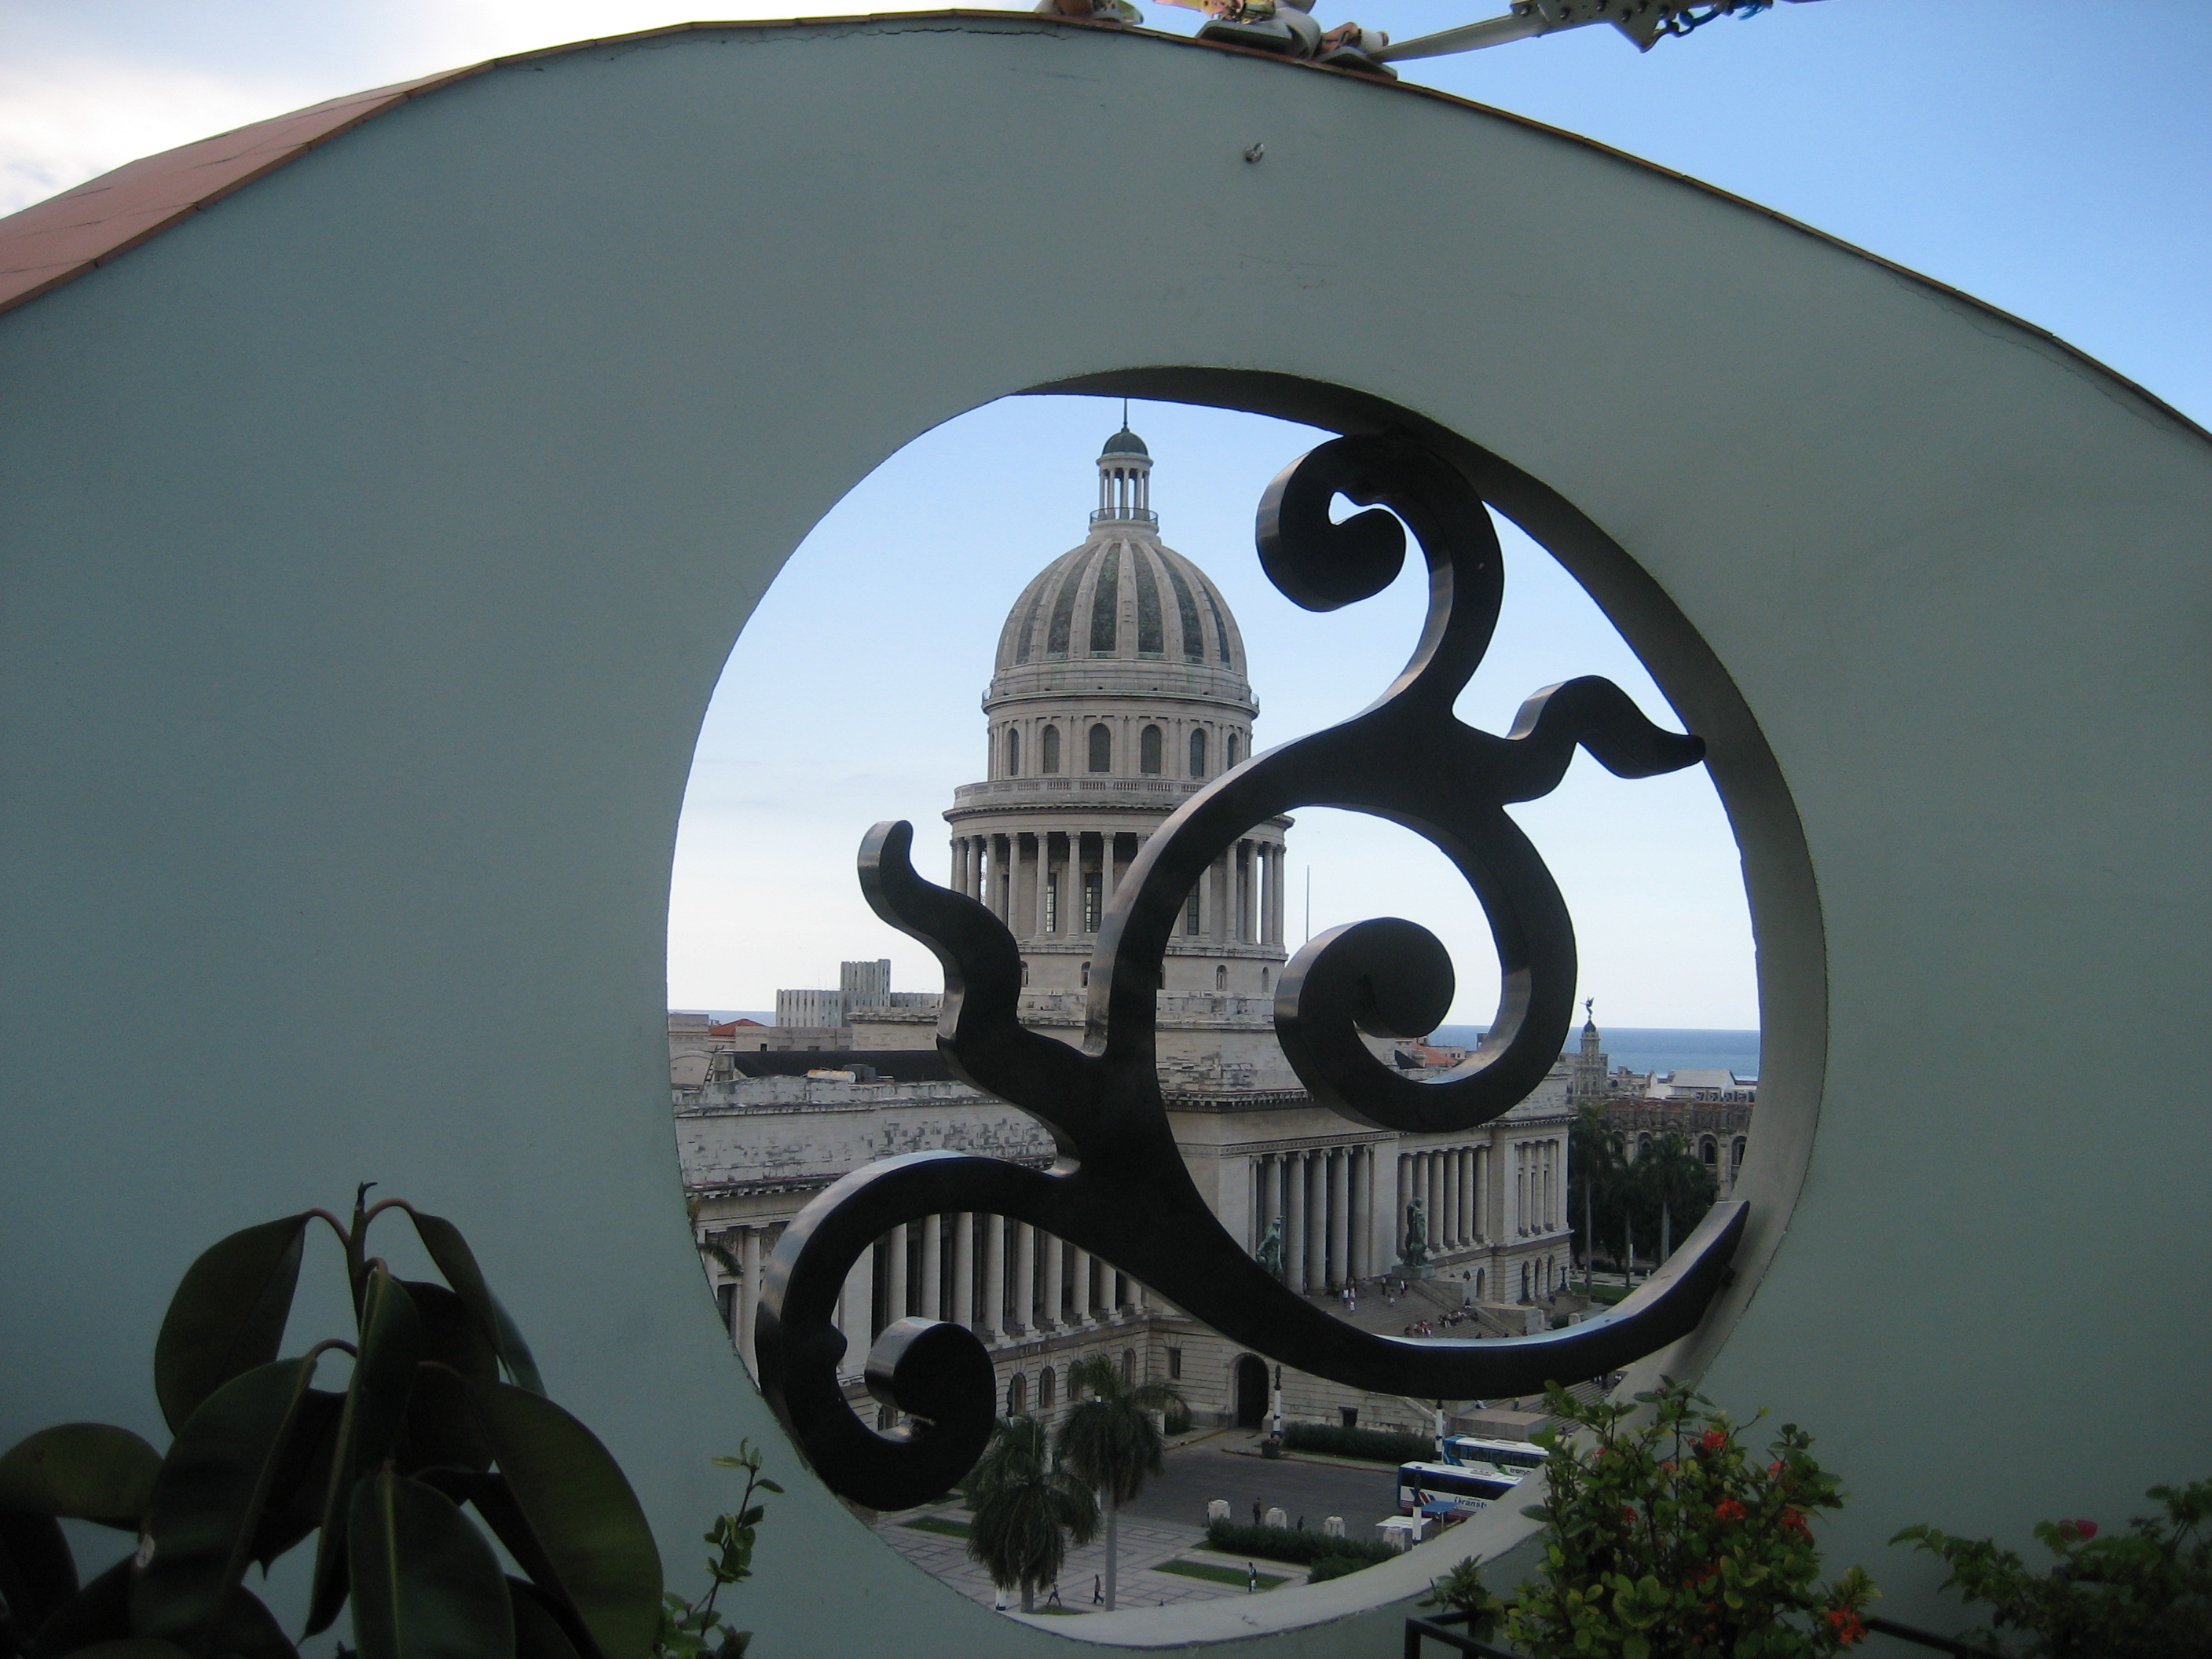 View of the Capitol building from the Saraoga hotel rooftop